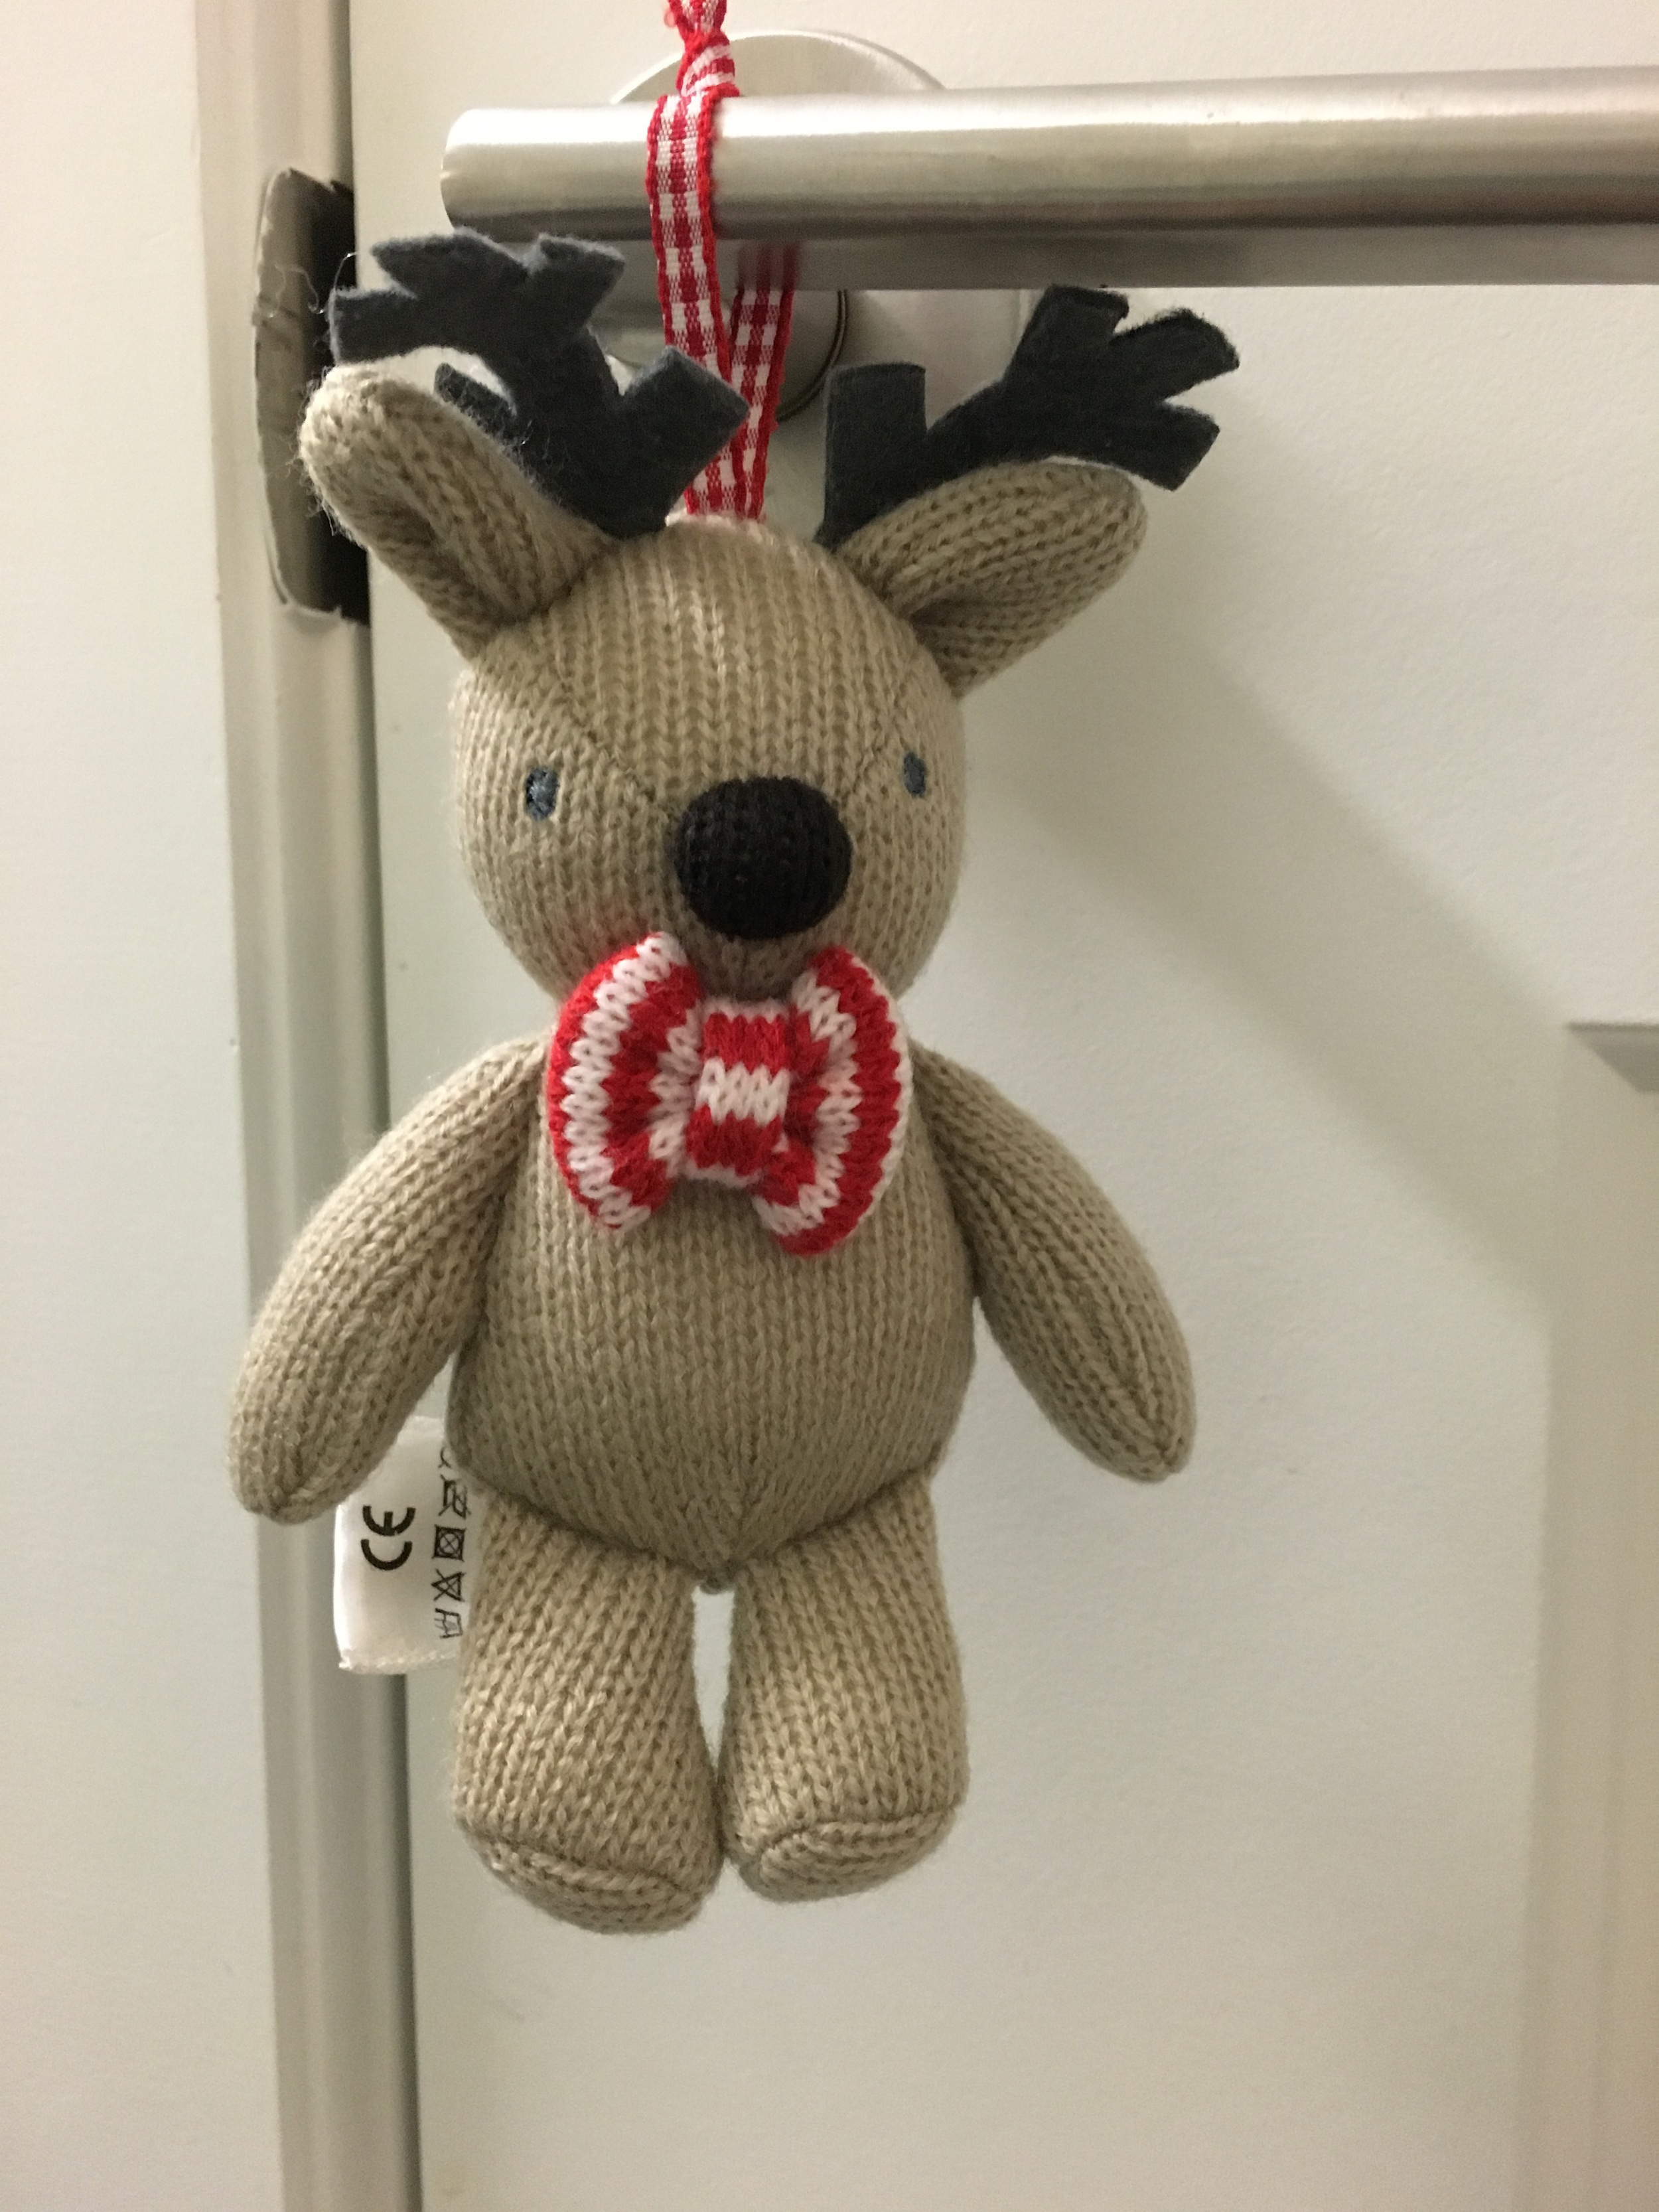 The cutest knit reindeer for Jake's room (a gift from a relative in England)